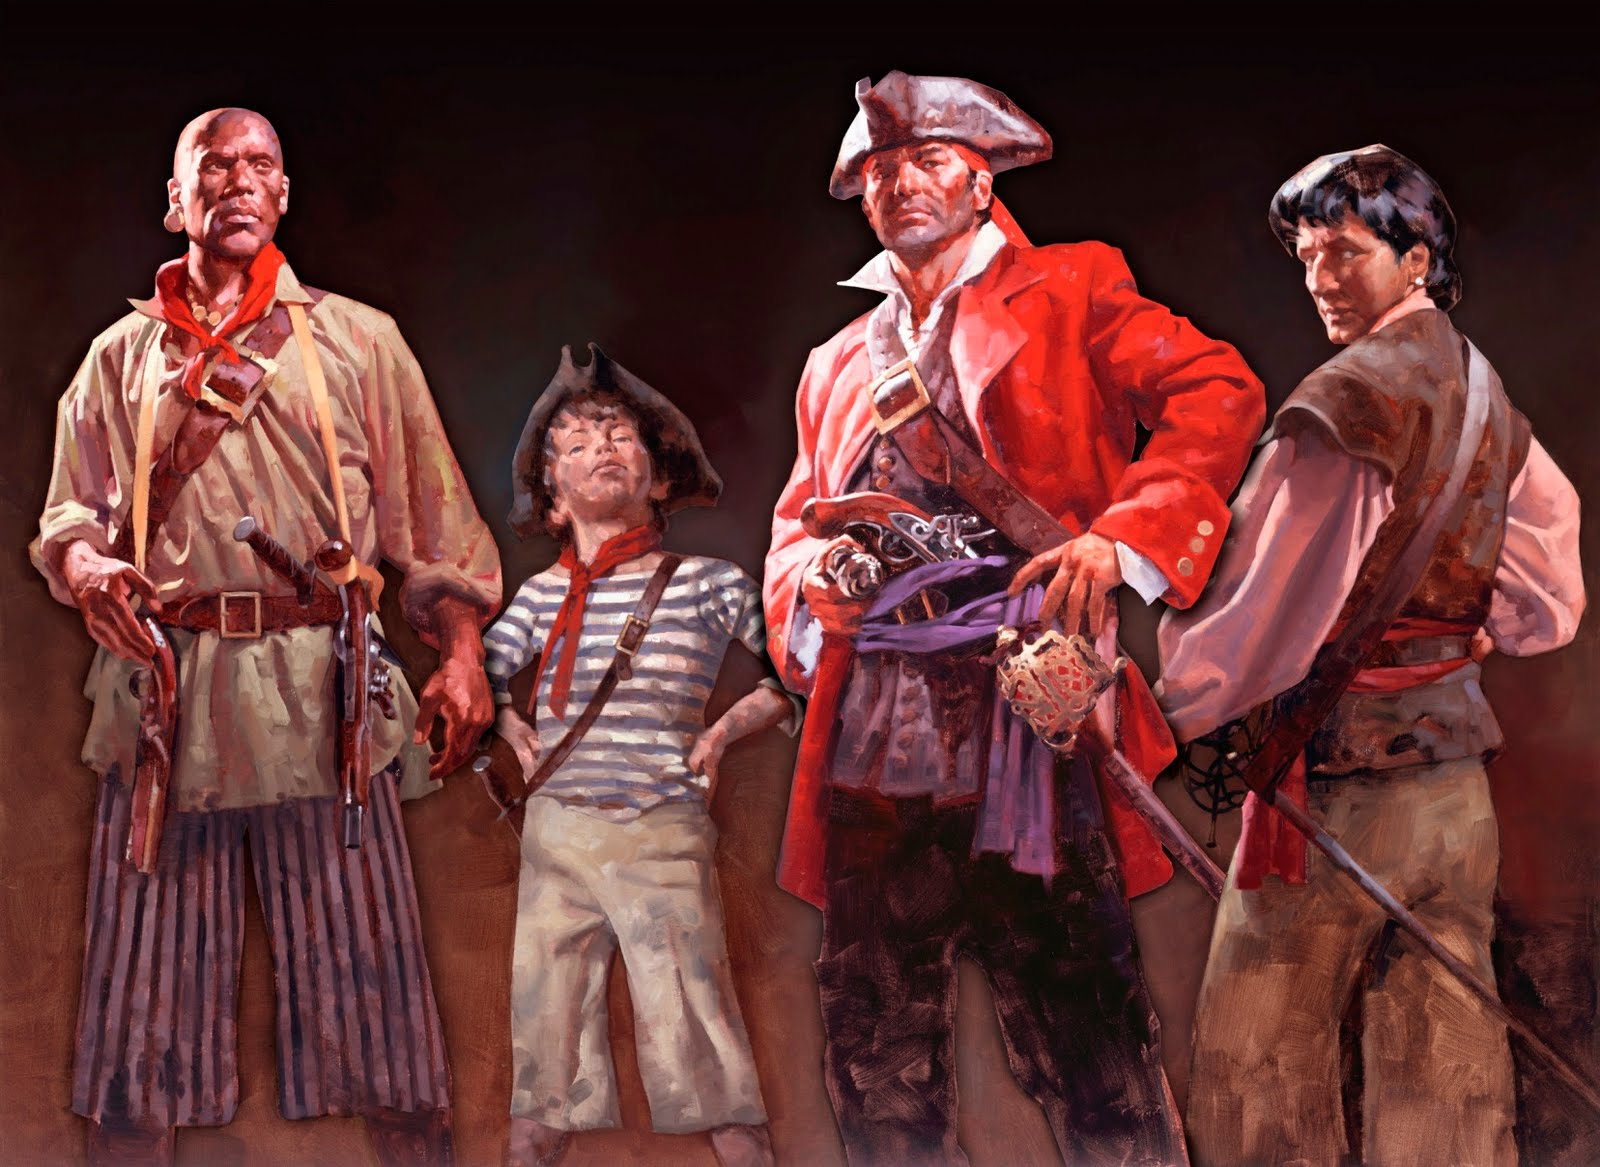 Swashbucklers!: Real Pirates Exhibition